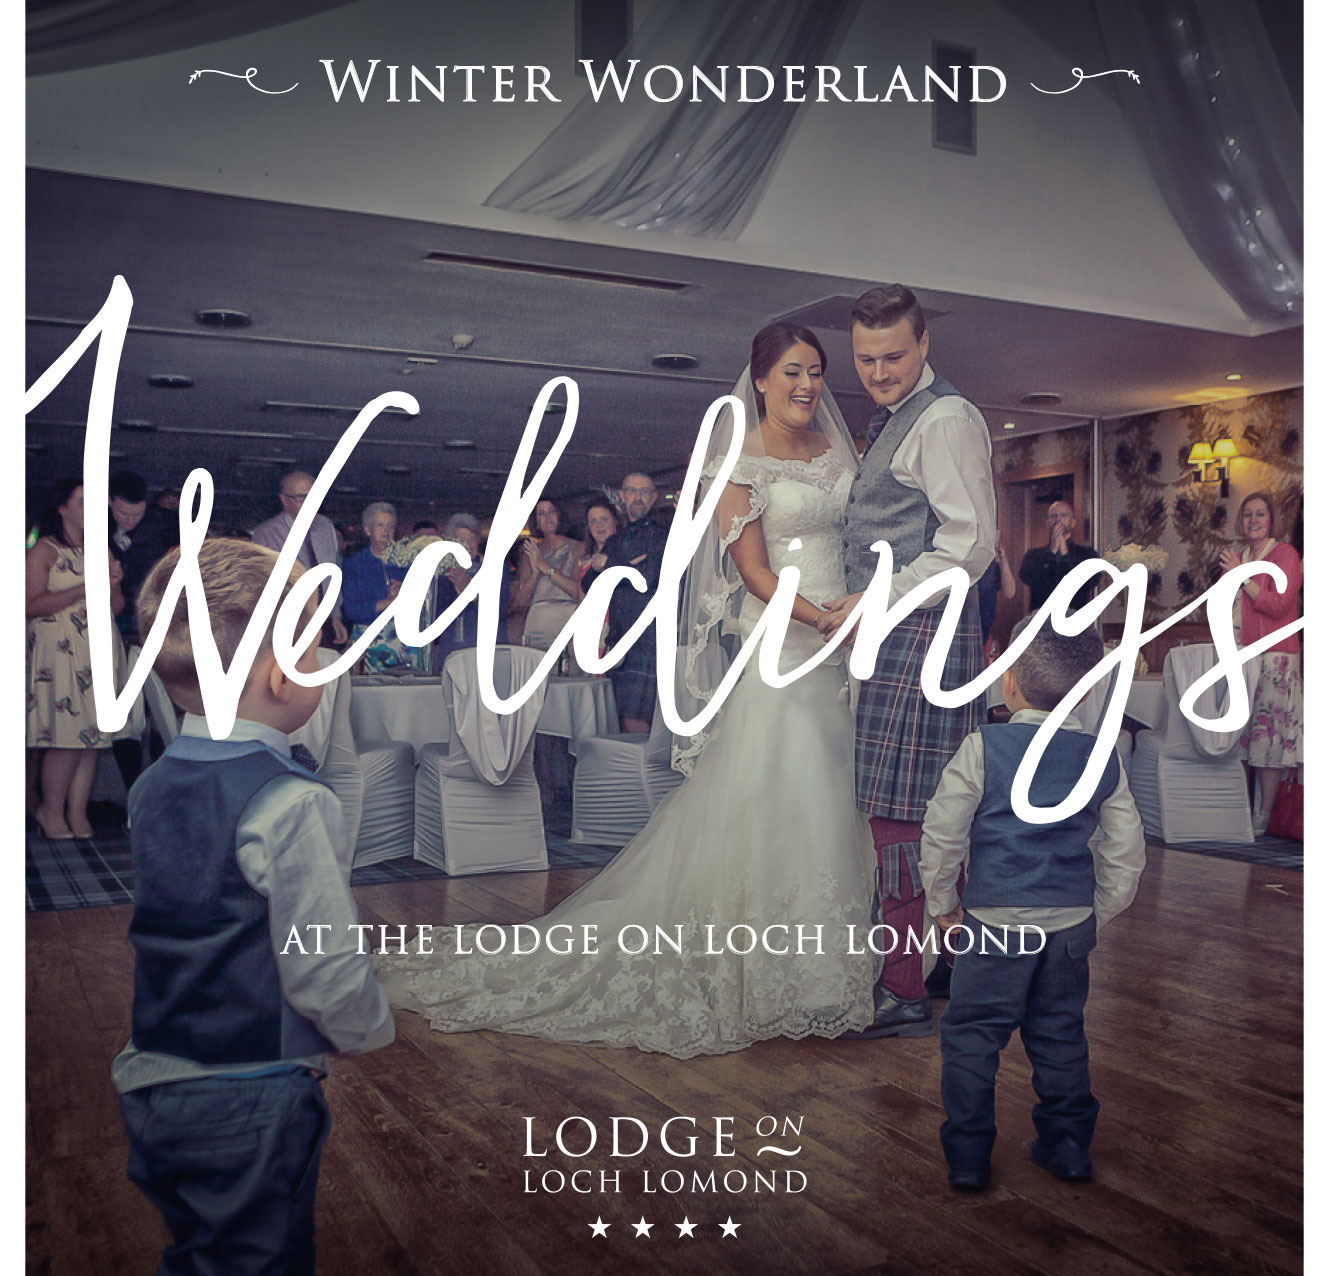 Lodge on Loch Lomond Winter Wedding packages 2018